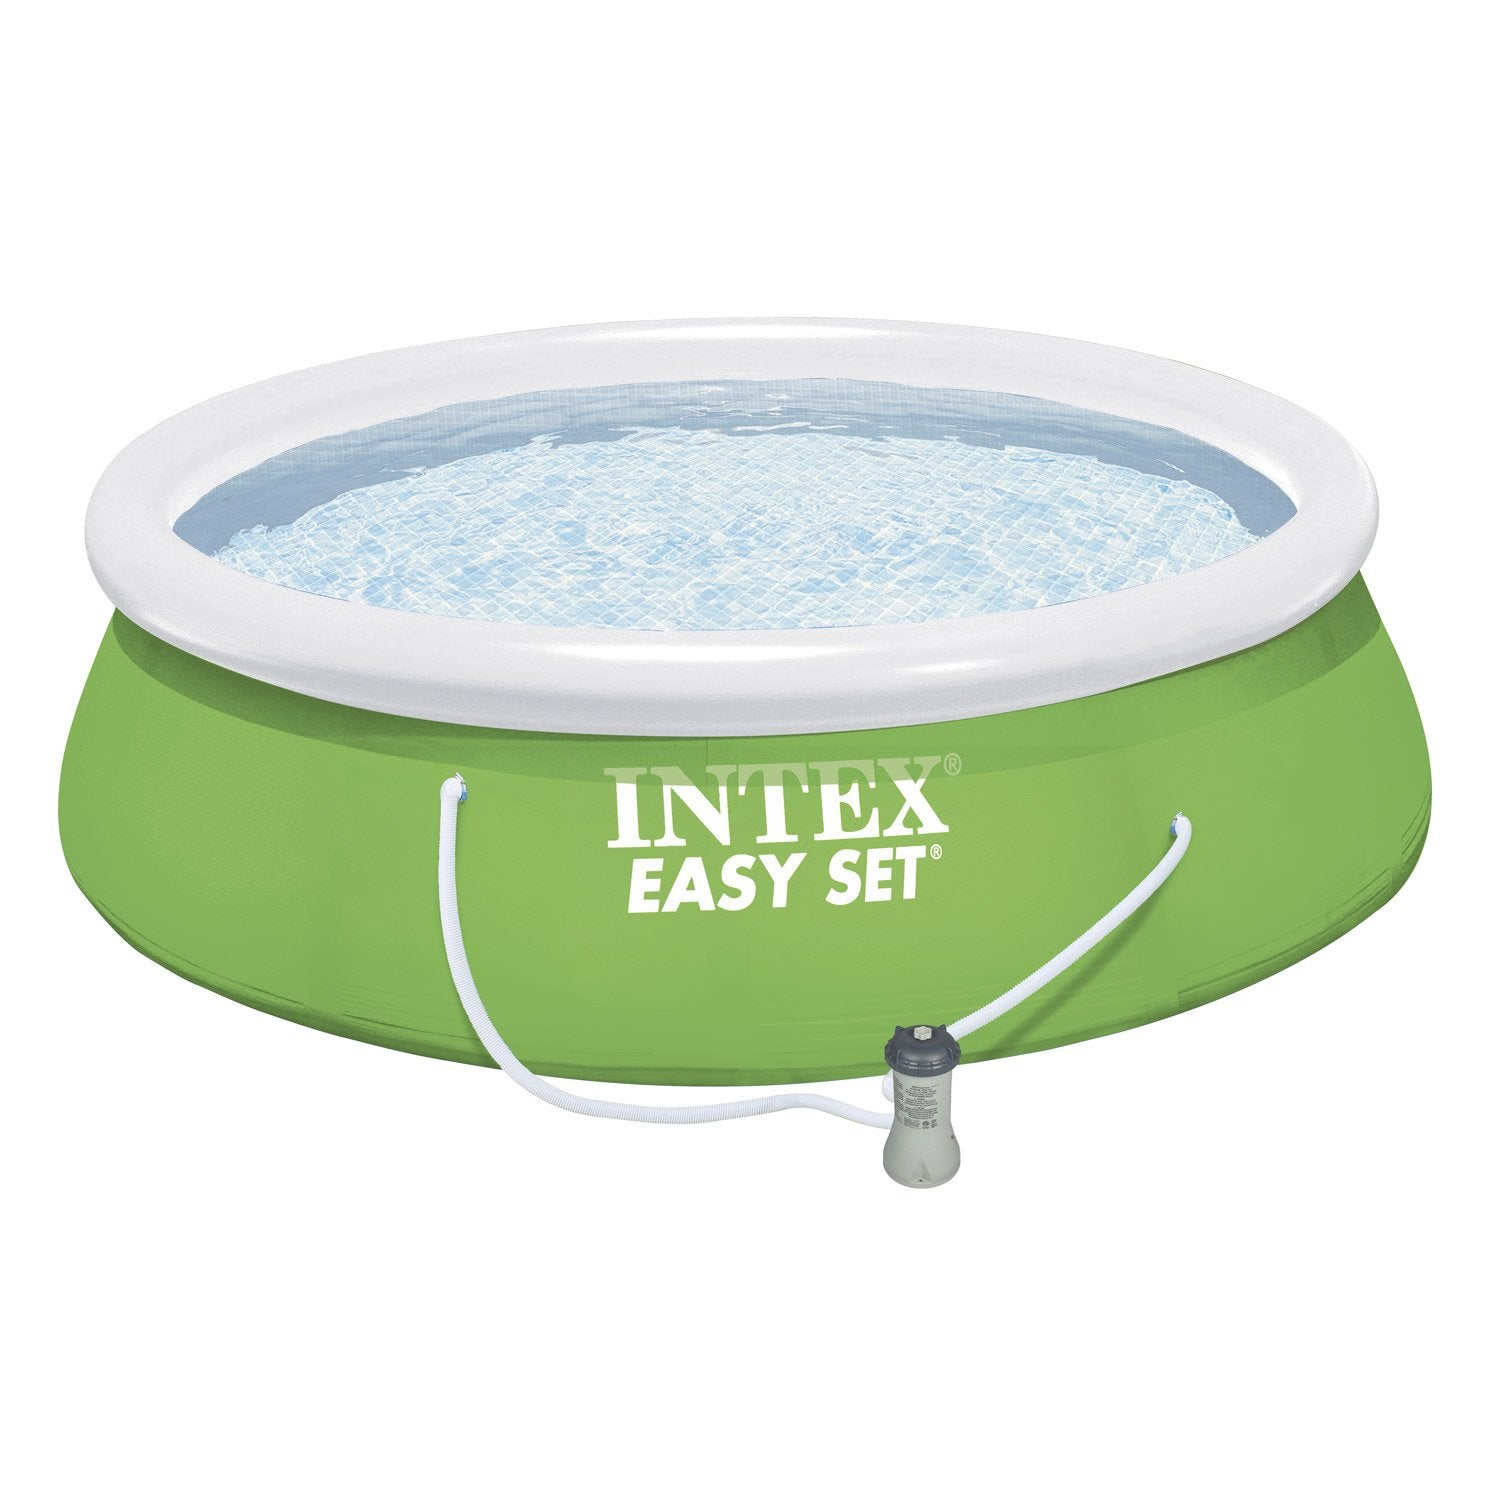 Piscine hors sol autoportante gonflable suppression intex - Chauffage piscine hors sol intex ...